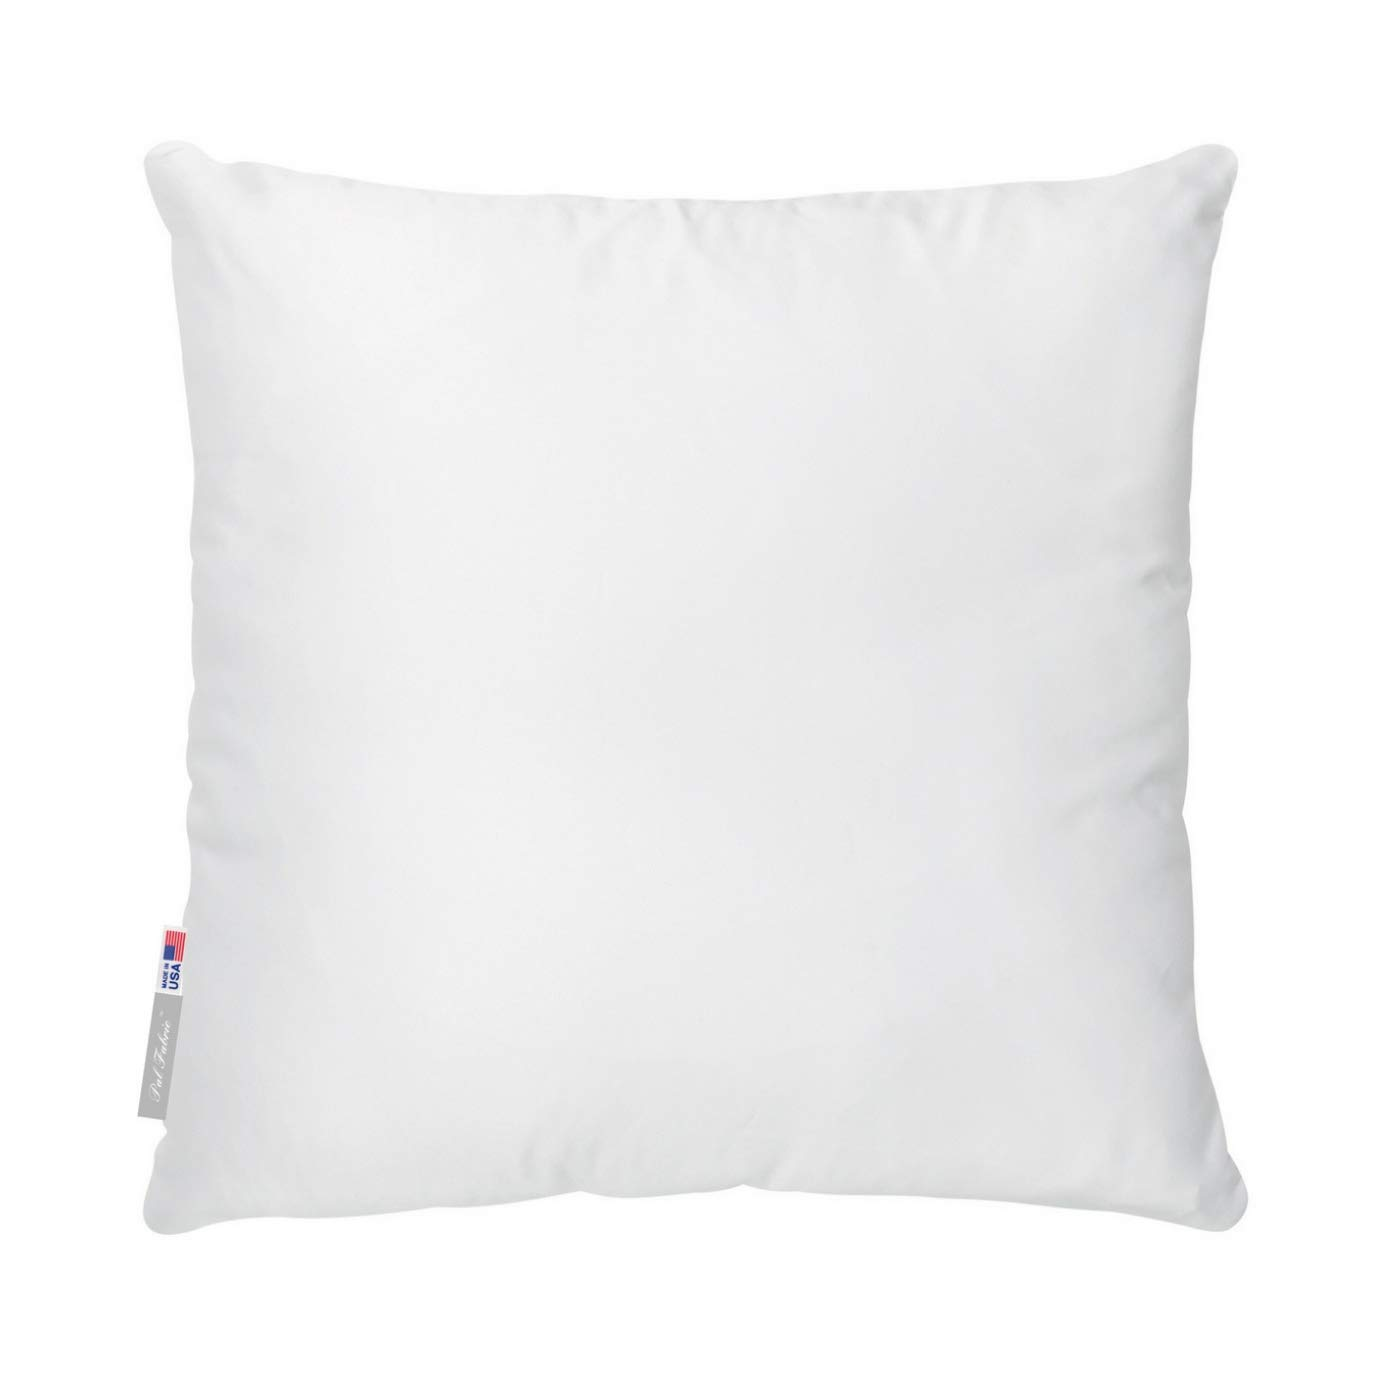 Pal Fabric Square Sham Pillow Insert 14x14 Made In Usa For 14 X14 Pillow Cover 14x14